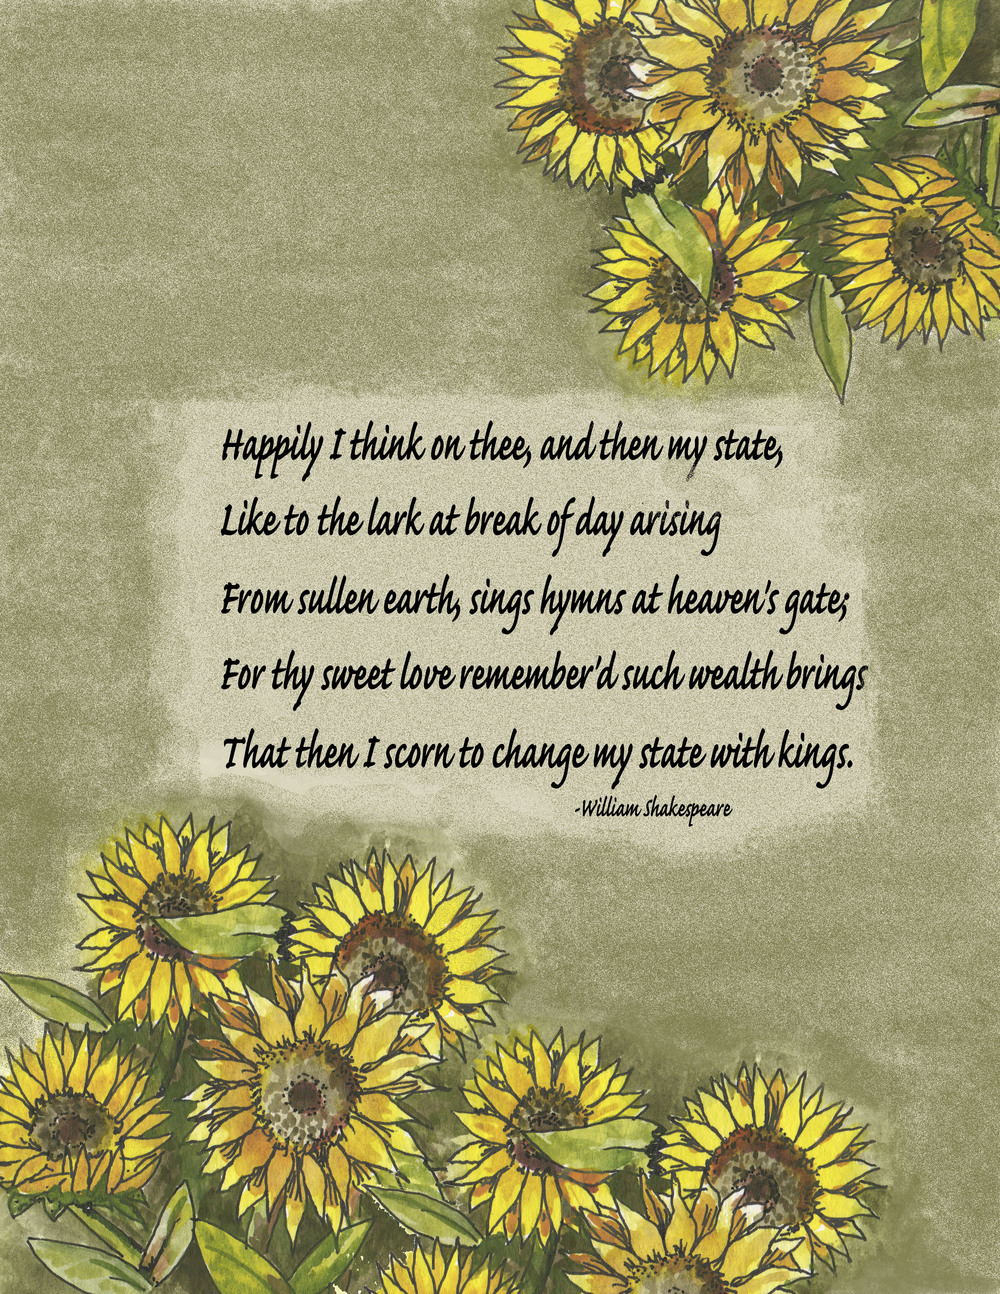 sunflower with text 2.jpg